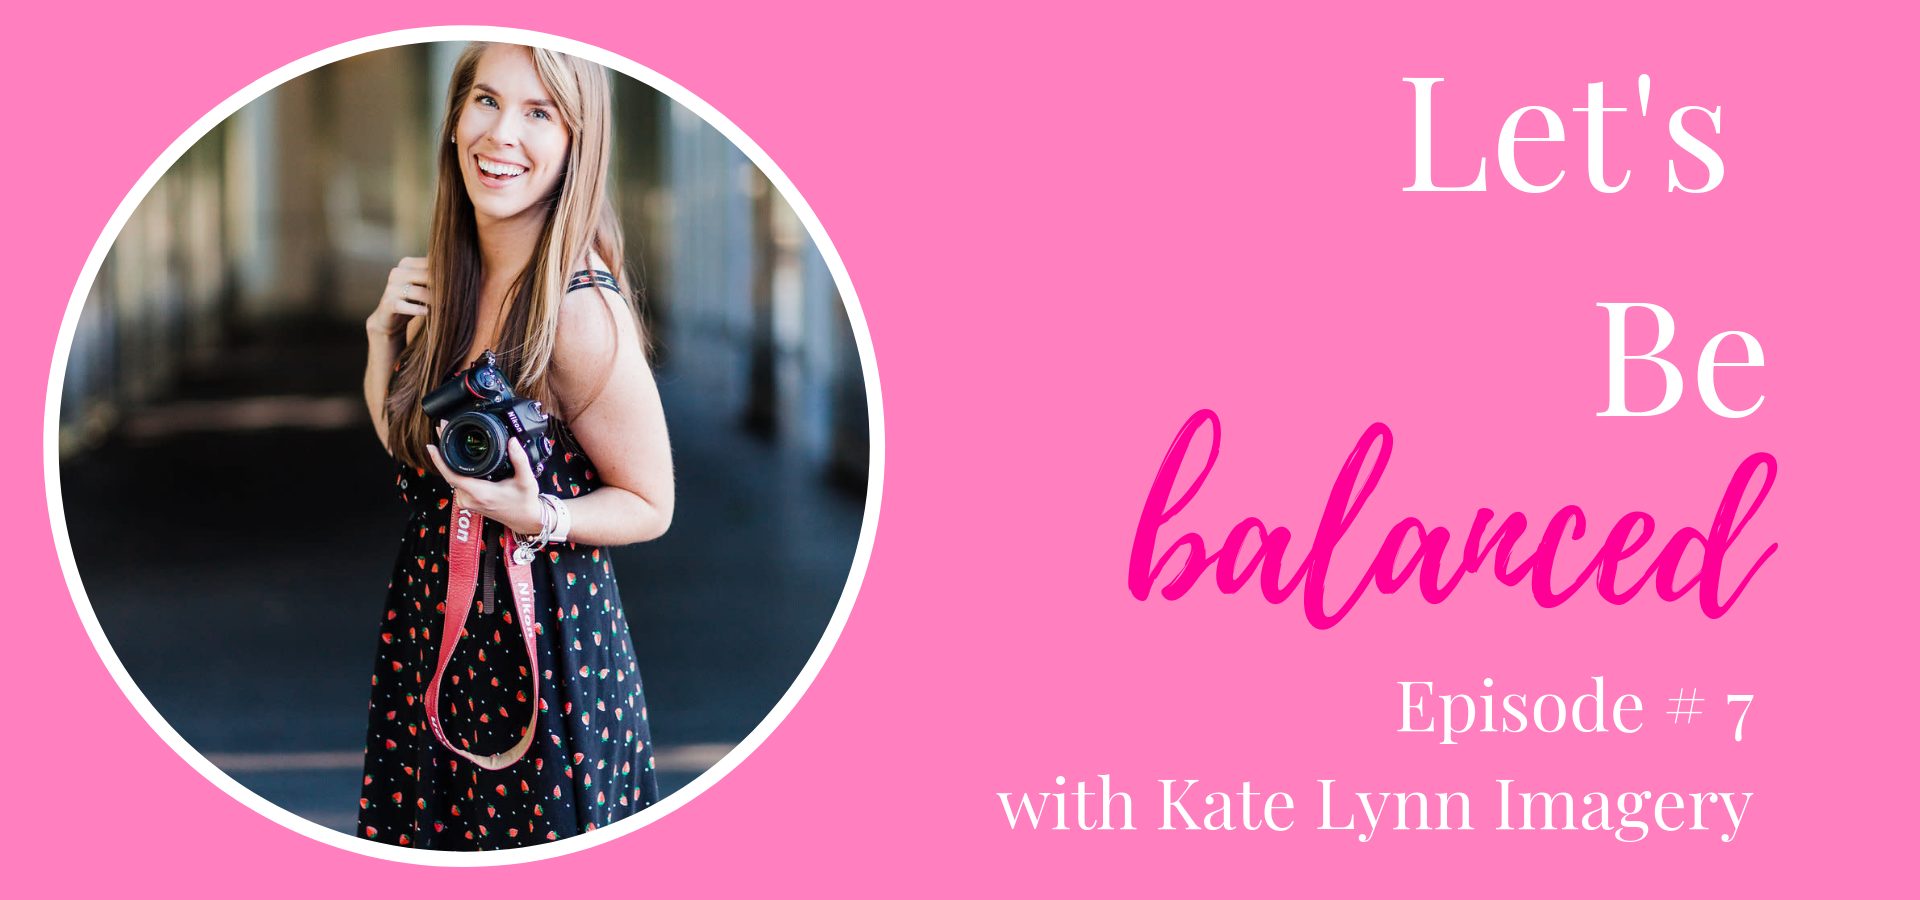 Podcast Epsiode #7 with Kate from Kate Lynn Imagery discussing being balanced and inspired while wearing all the hats.